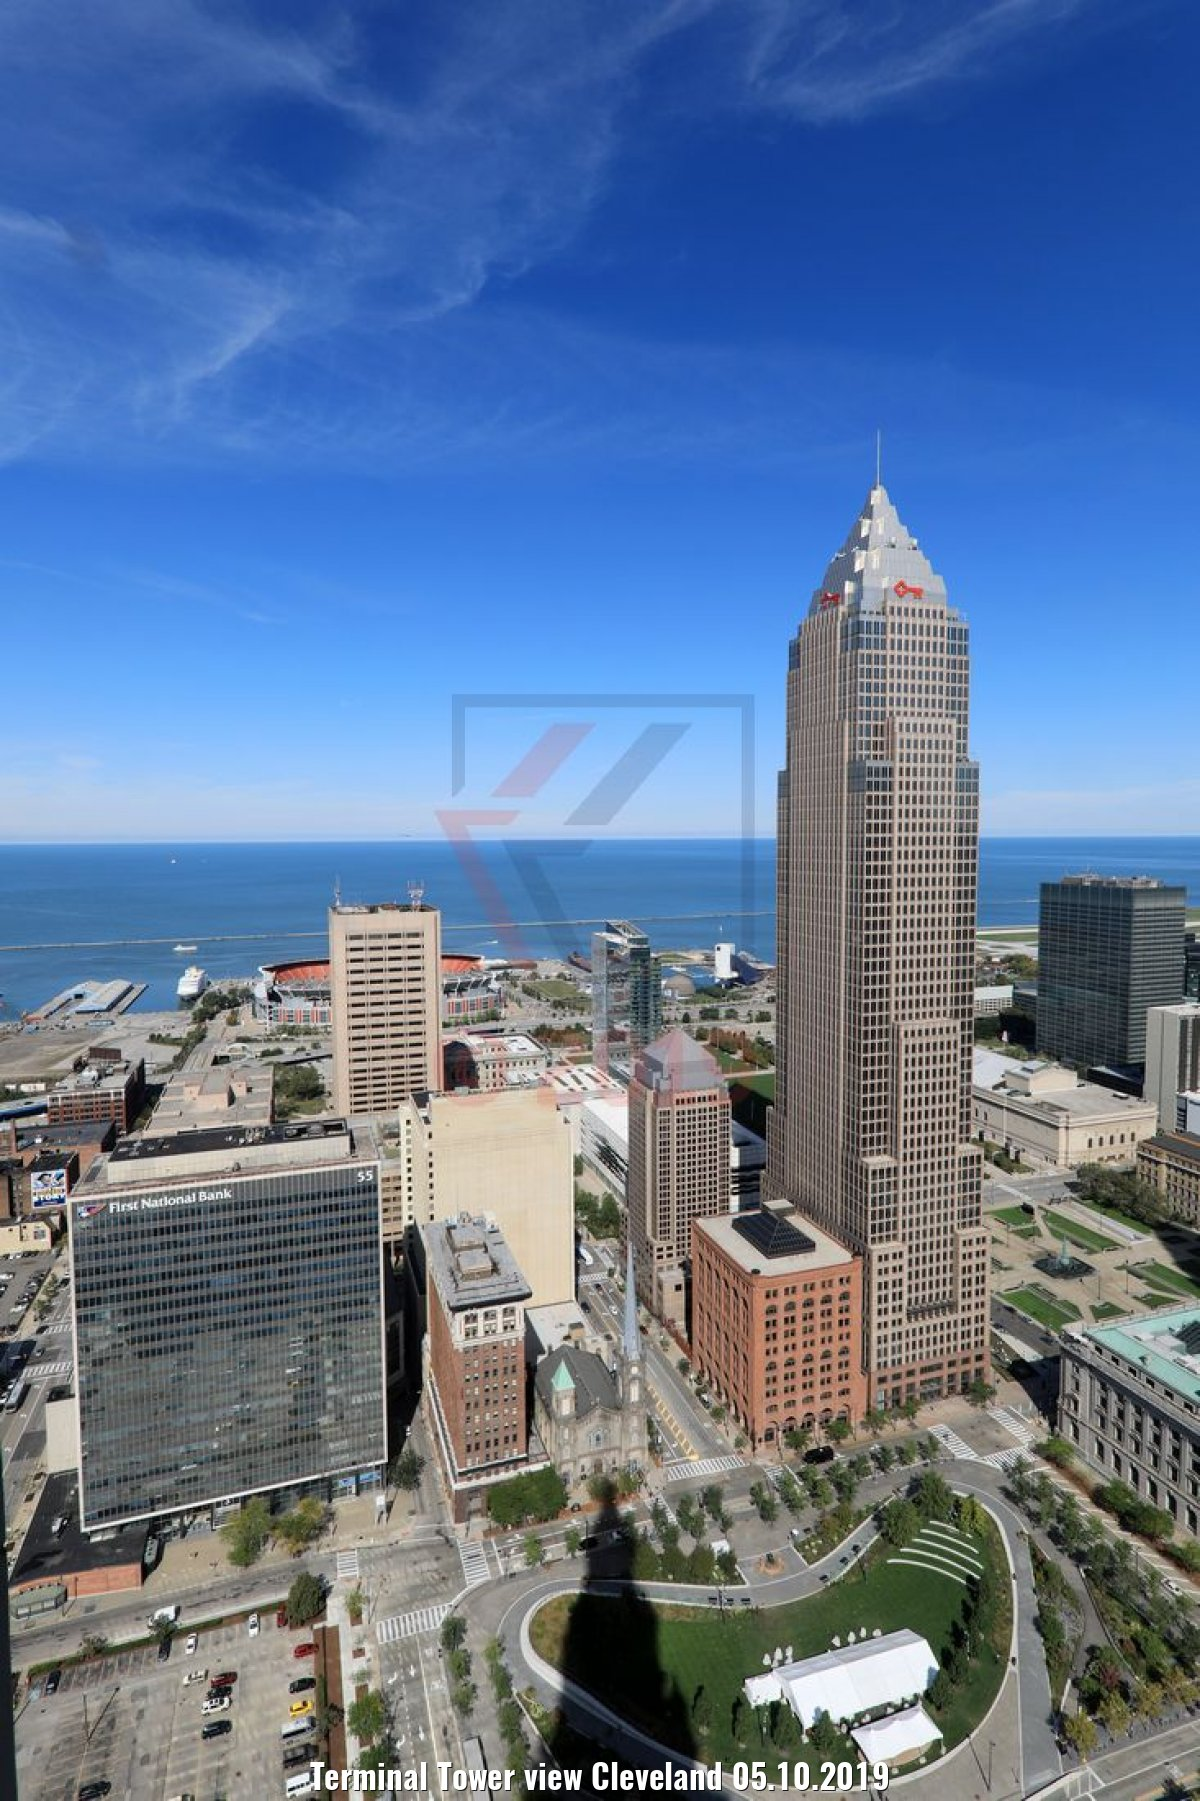 Terminal Tower view Cleveland 05.10.2019